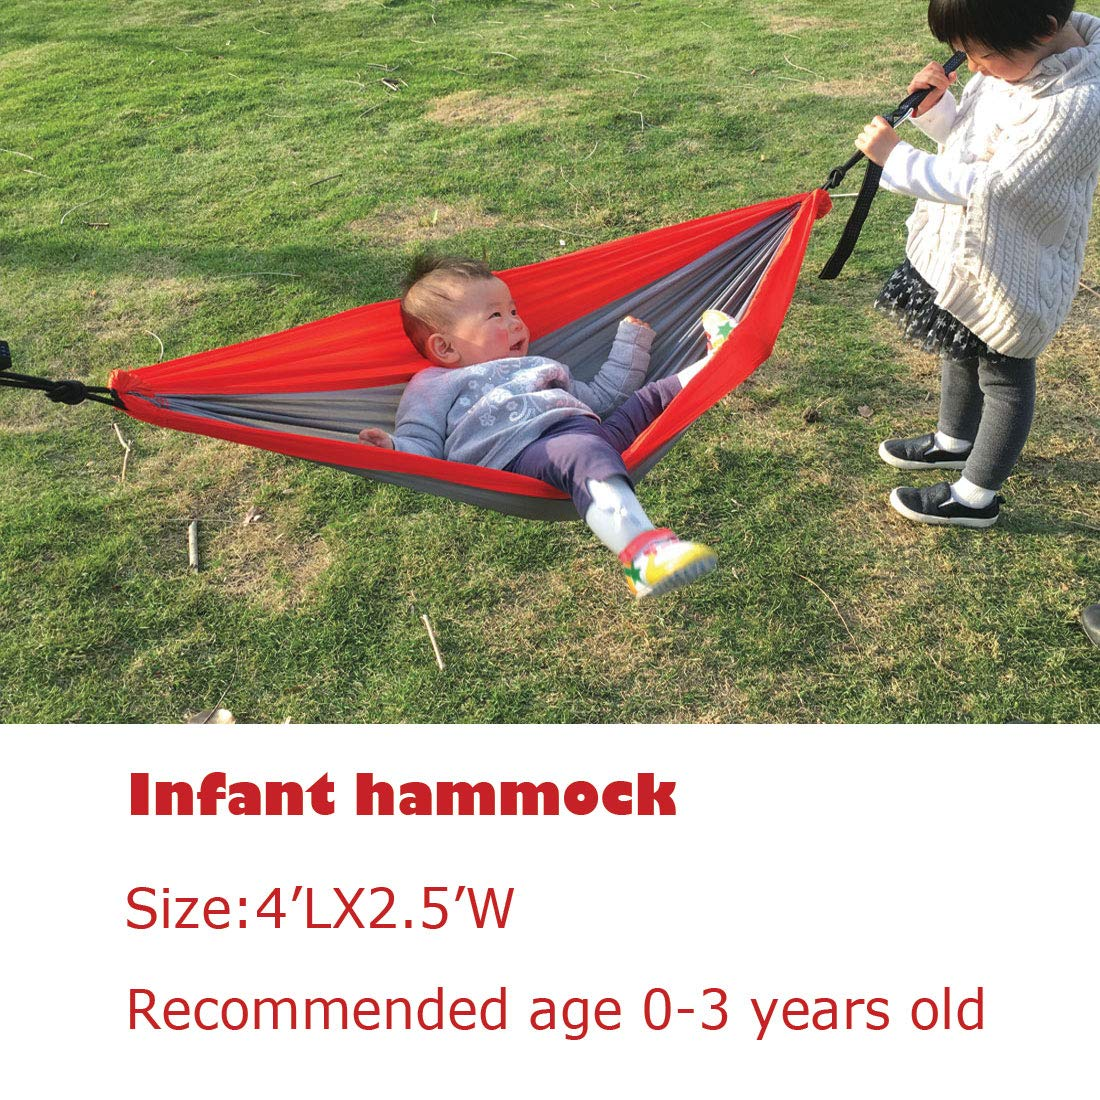 Acckiz Parachute Camping Hammock-5 Size for Infant Toddler Teenage Single Adult Double Adult -Includes Tree Friendly Hammock Straps 10FT Long 12Loops 2PCS and Strong Carabiners 2PCS